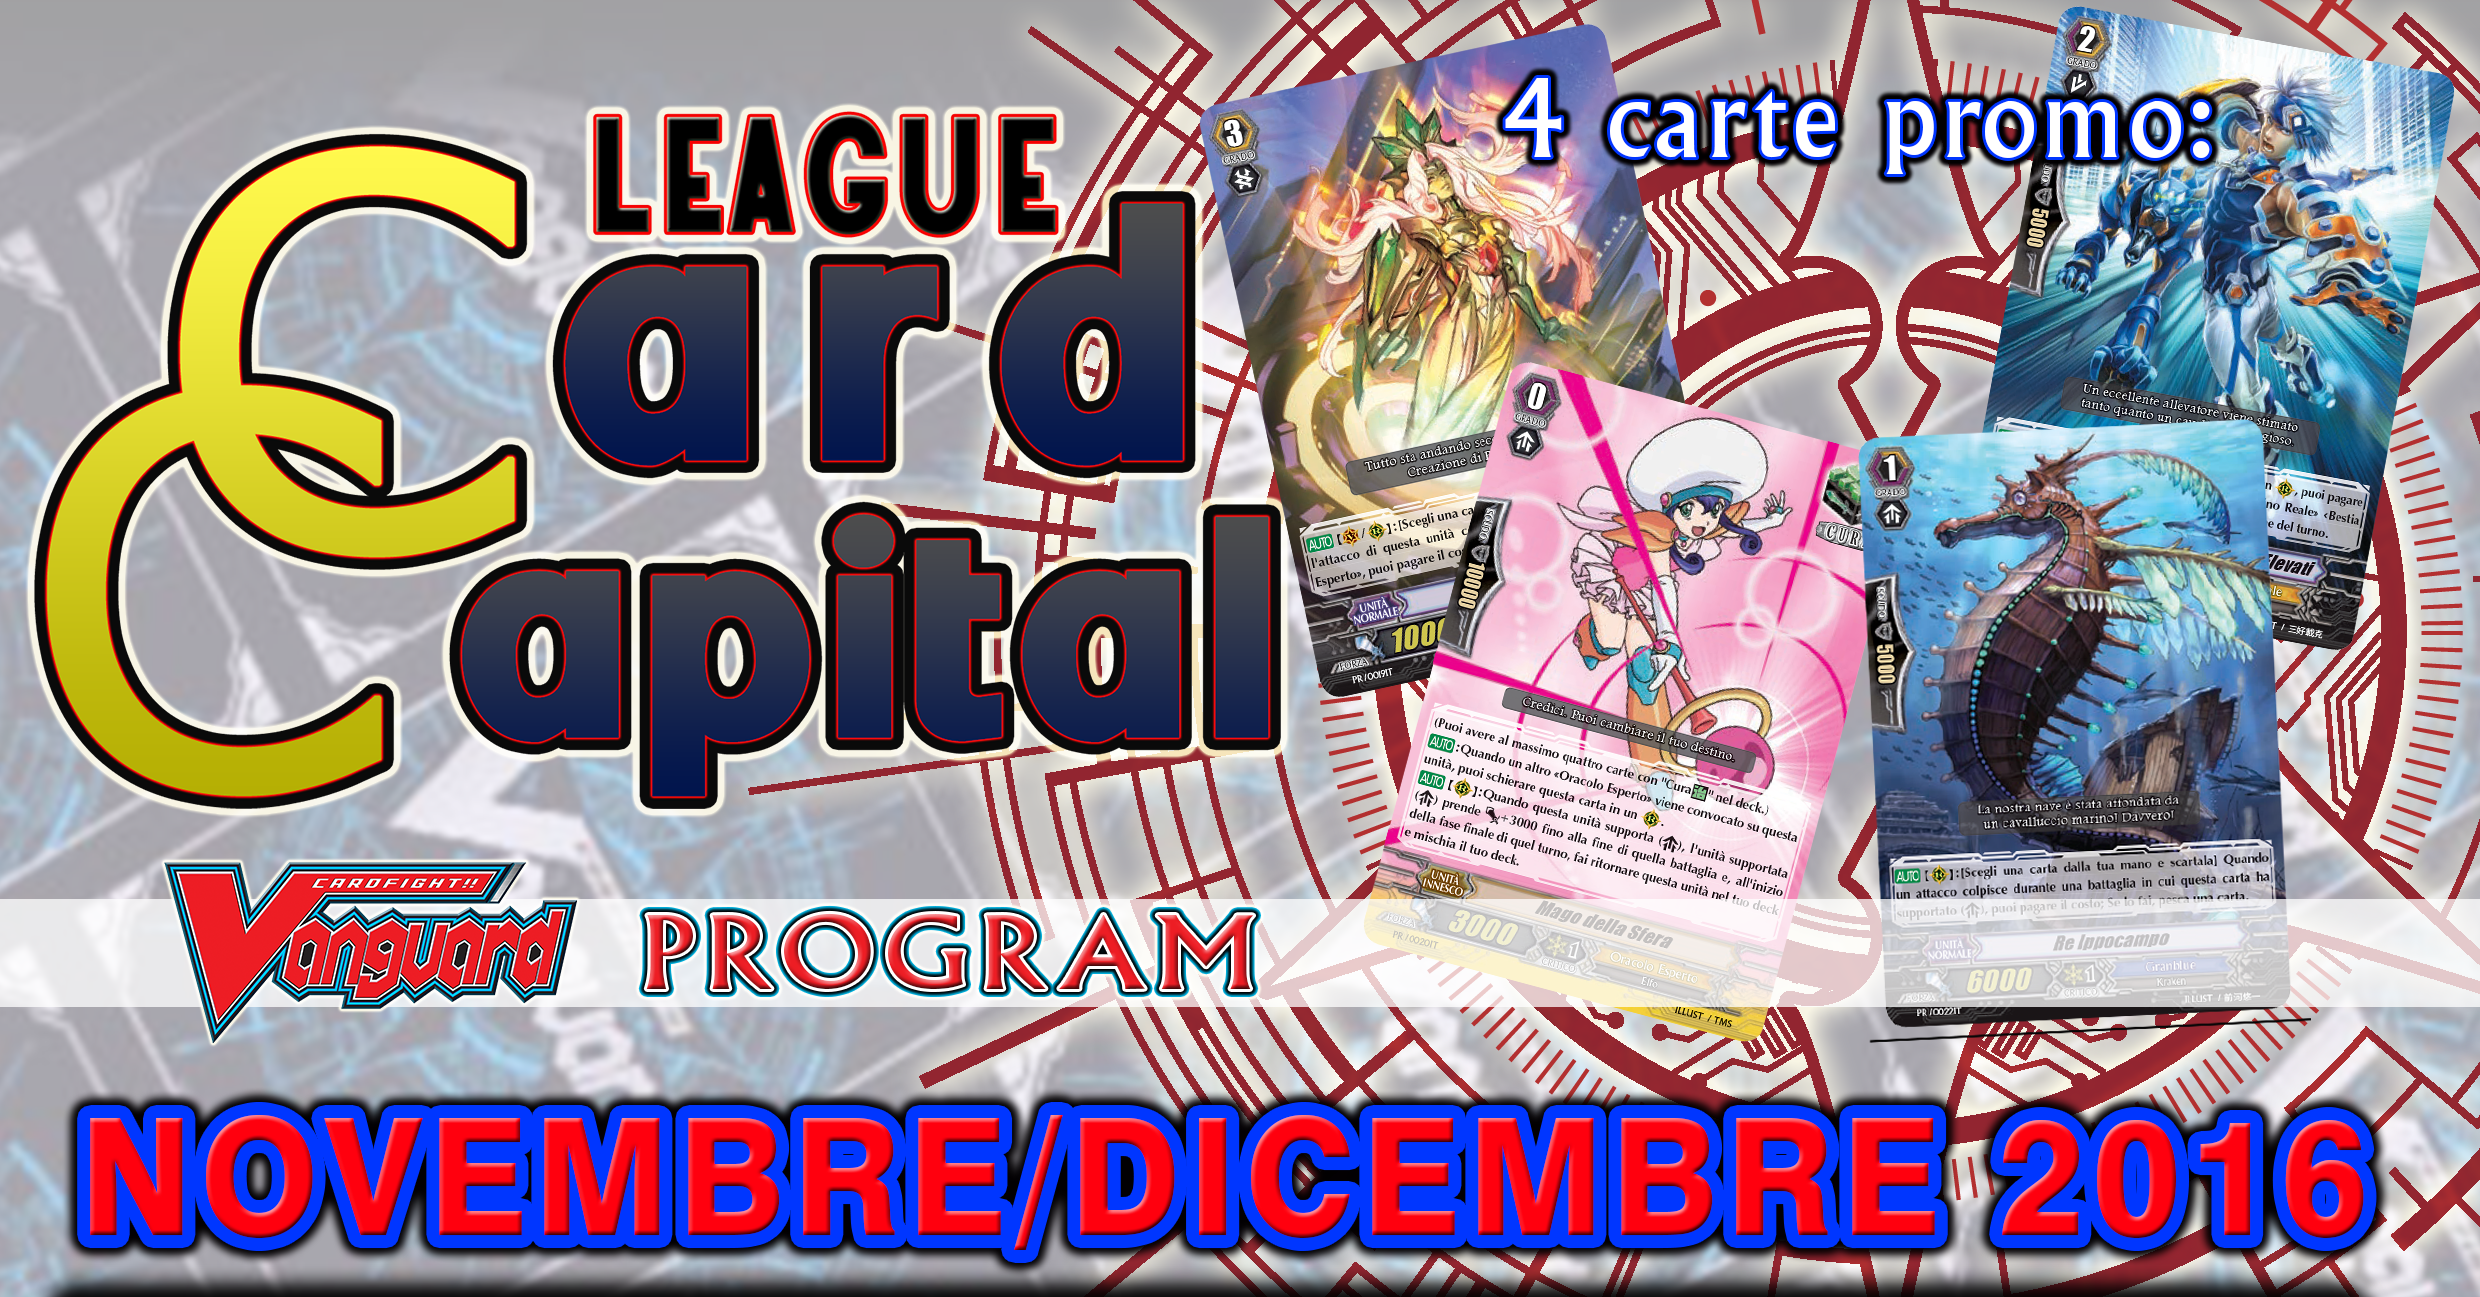 Card Capital League NOVEMBRE-DICEMBRE 2016